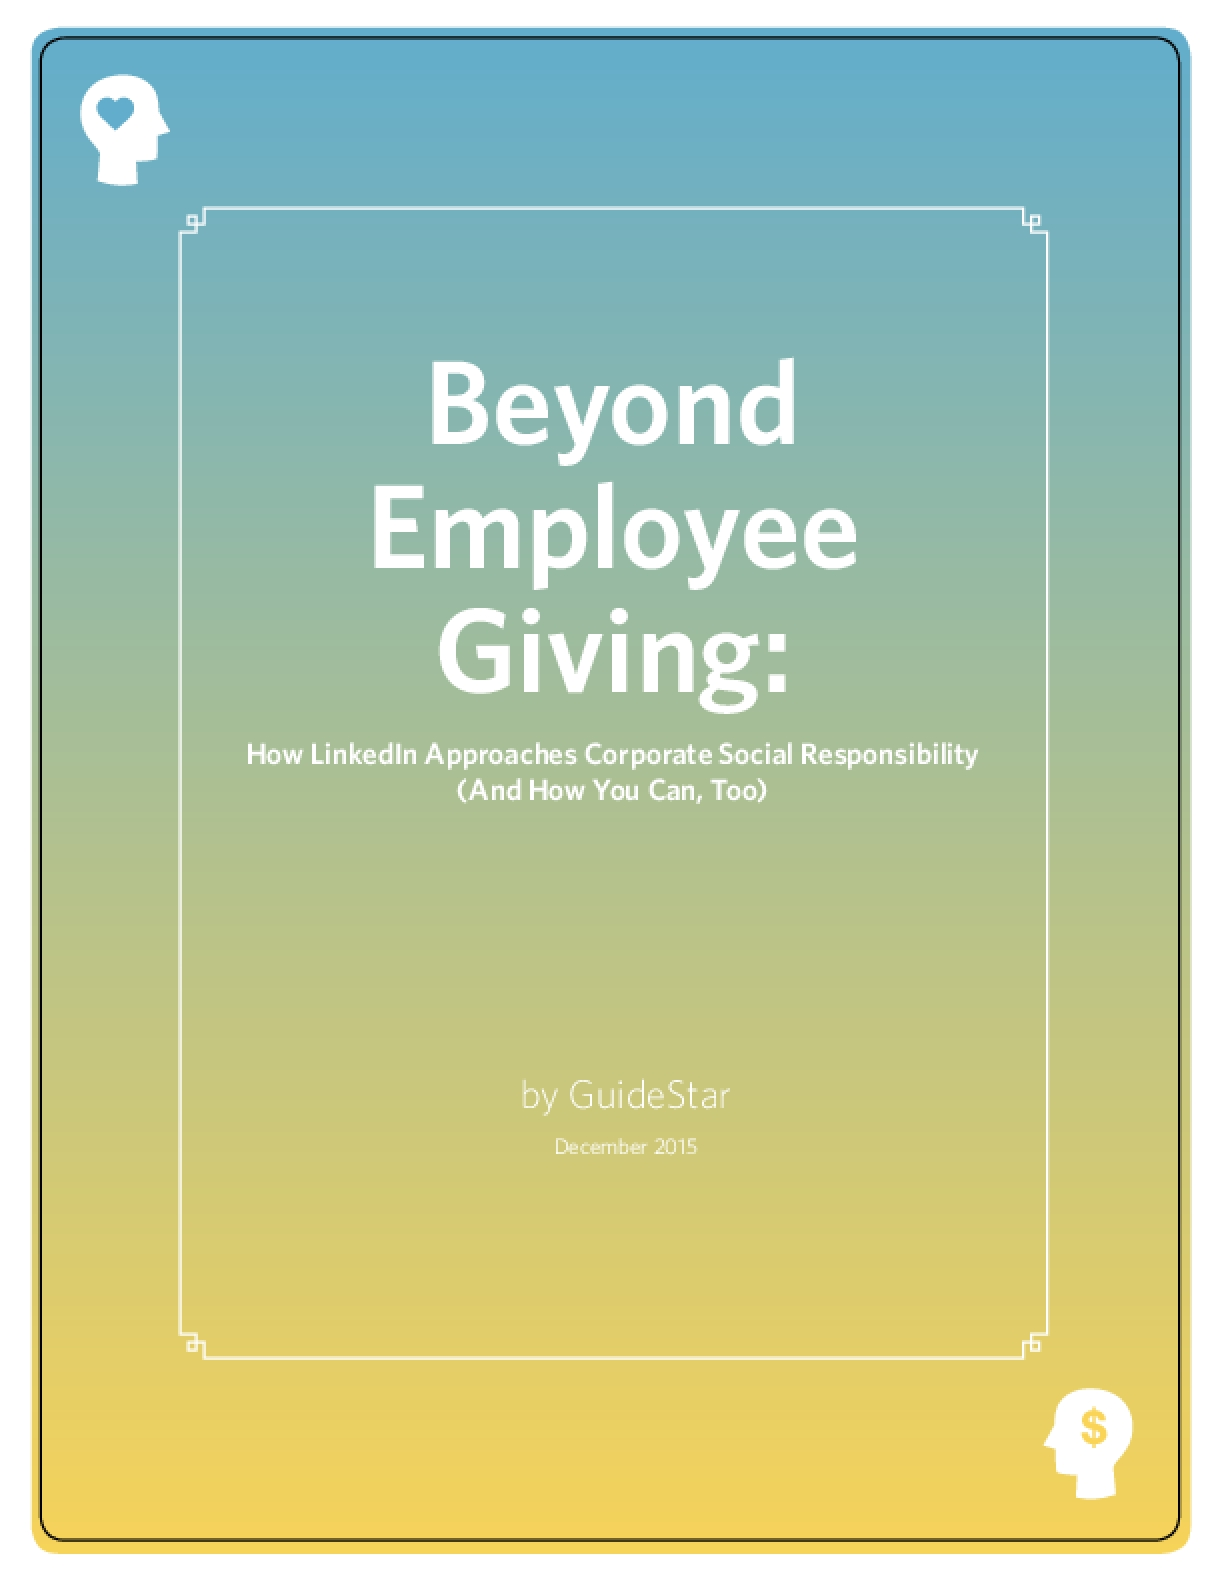 Beyond Employee Giving: How LinkedIn Approaches Corporate Social Responsibility (And How You Can, Too)